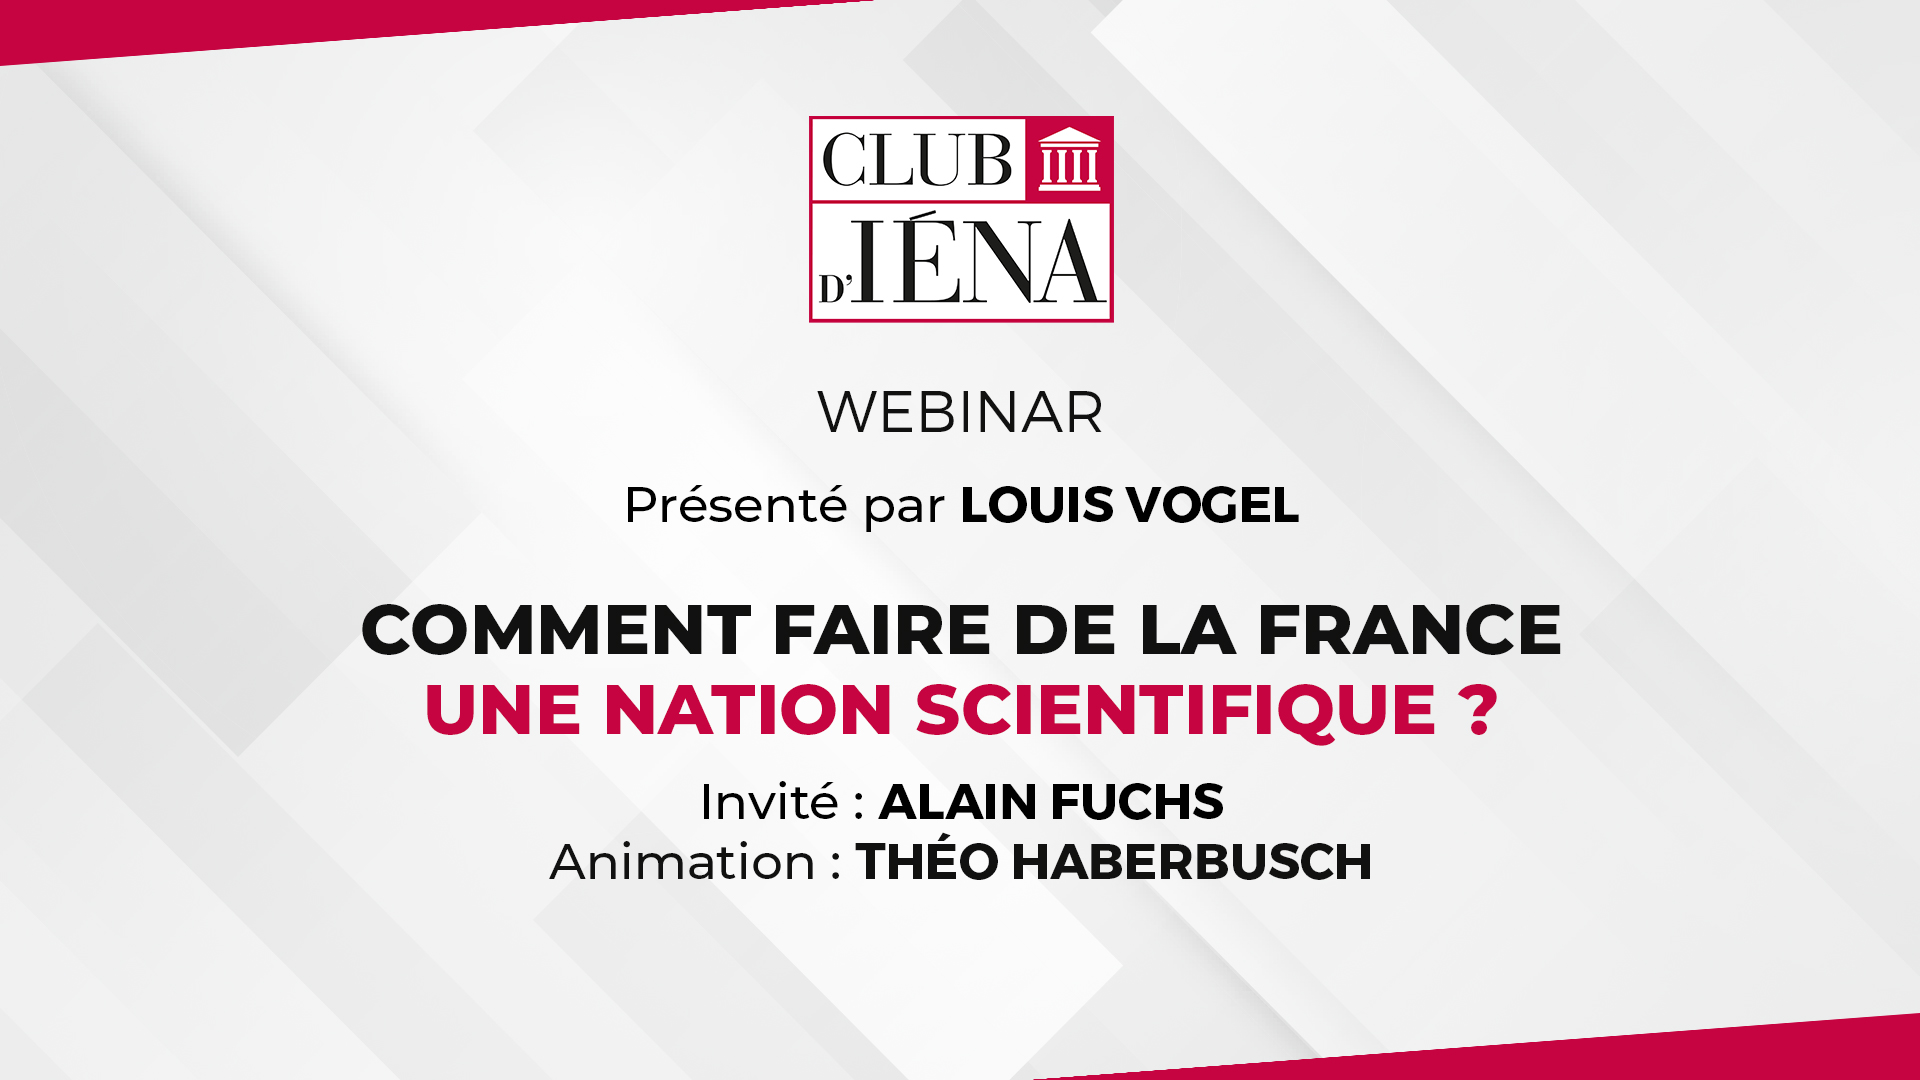 Club D'Iéna • Comment faire de la france une nation scientifique